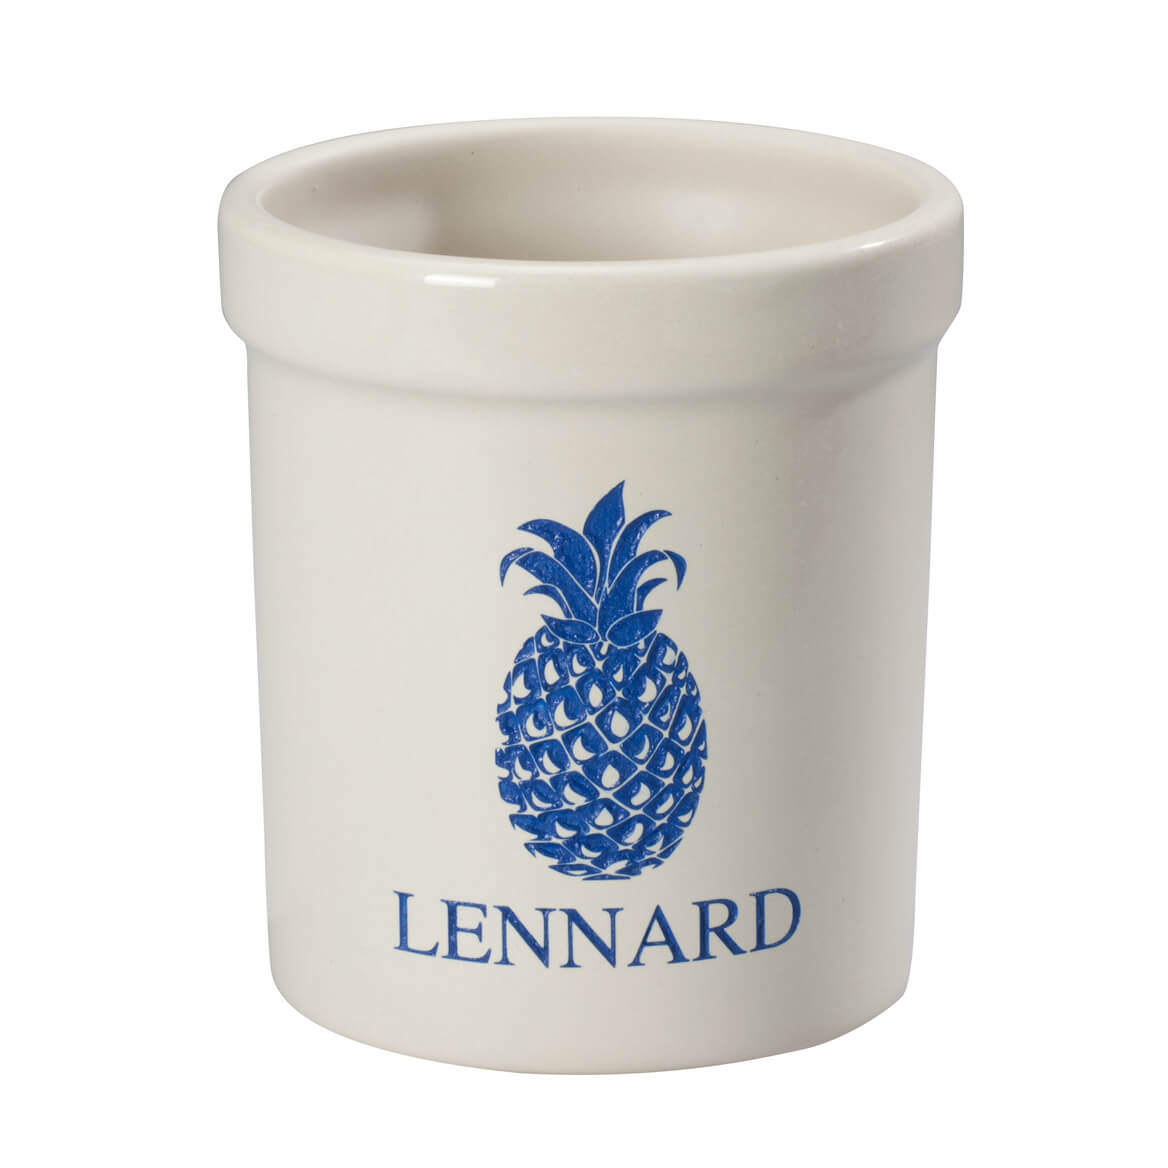 Personalized Pineapple Etched Crock 1 Quart